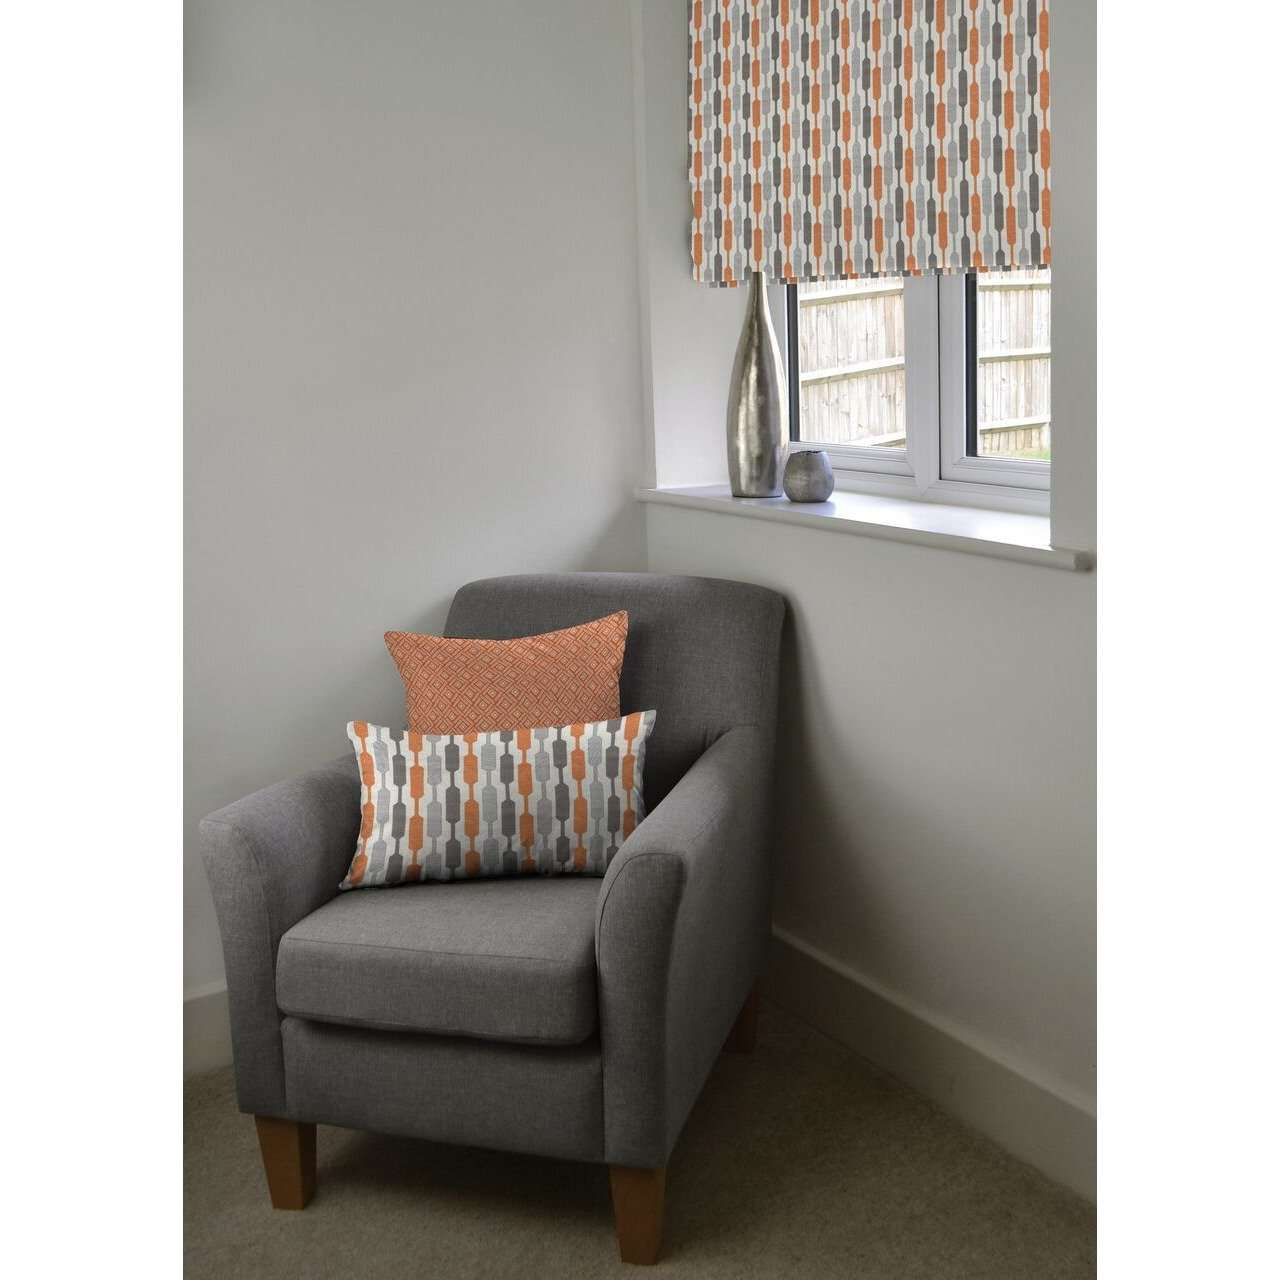 McAlister Textiles Lotta Burnt Orange + Grey Roman Blind Roman Blinds